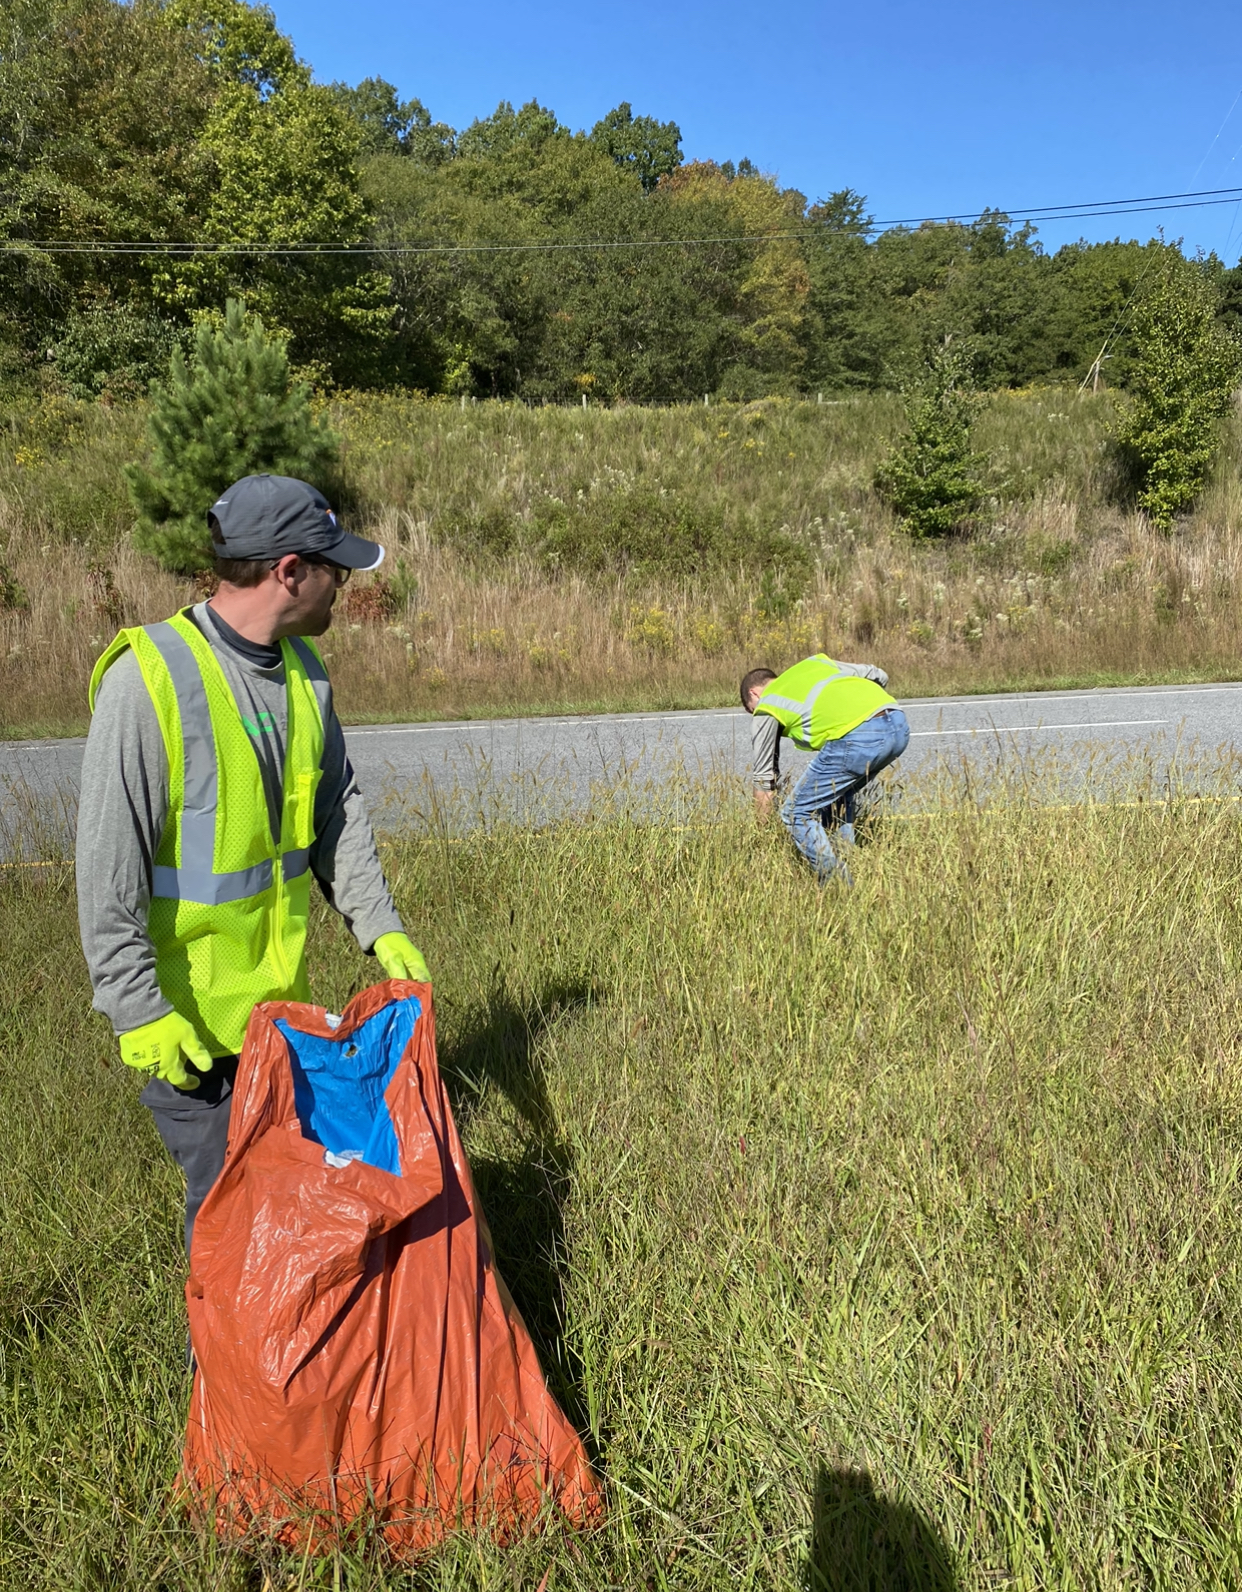 Keeping Rutherford County Beautiful – One Road at a Time